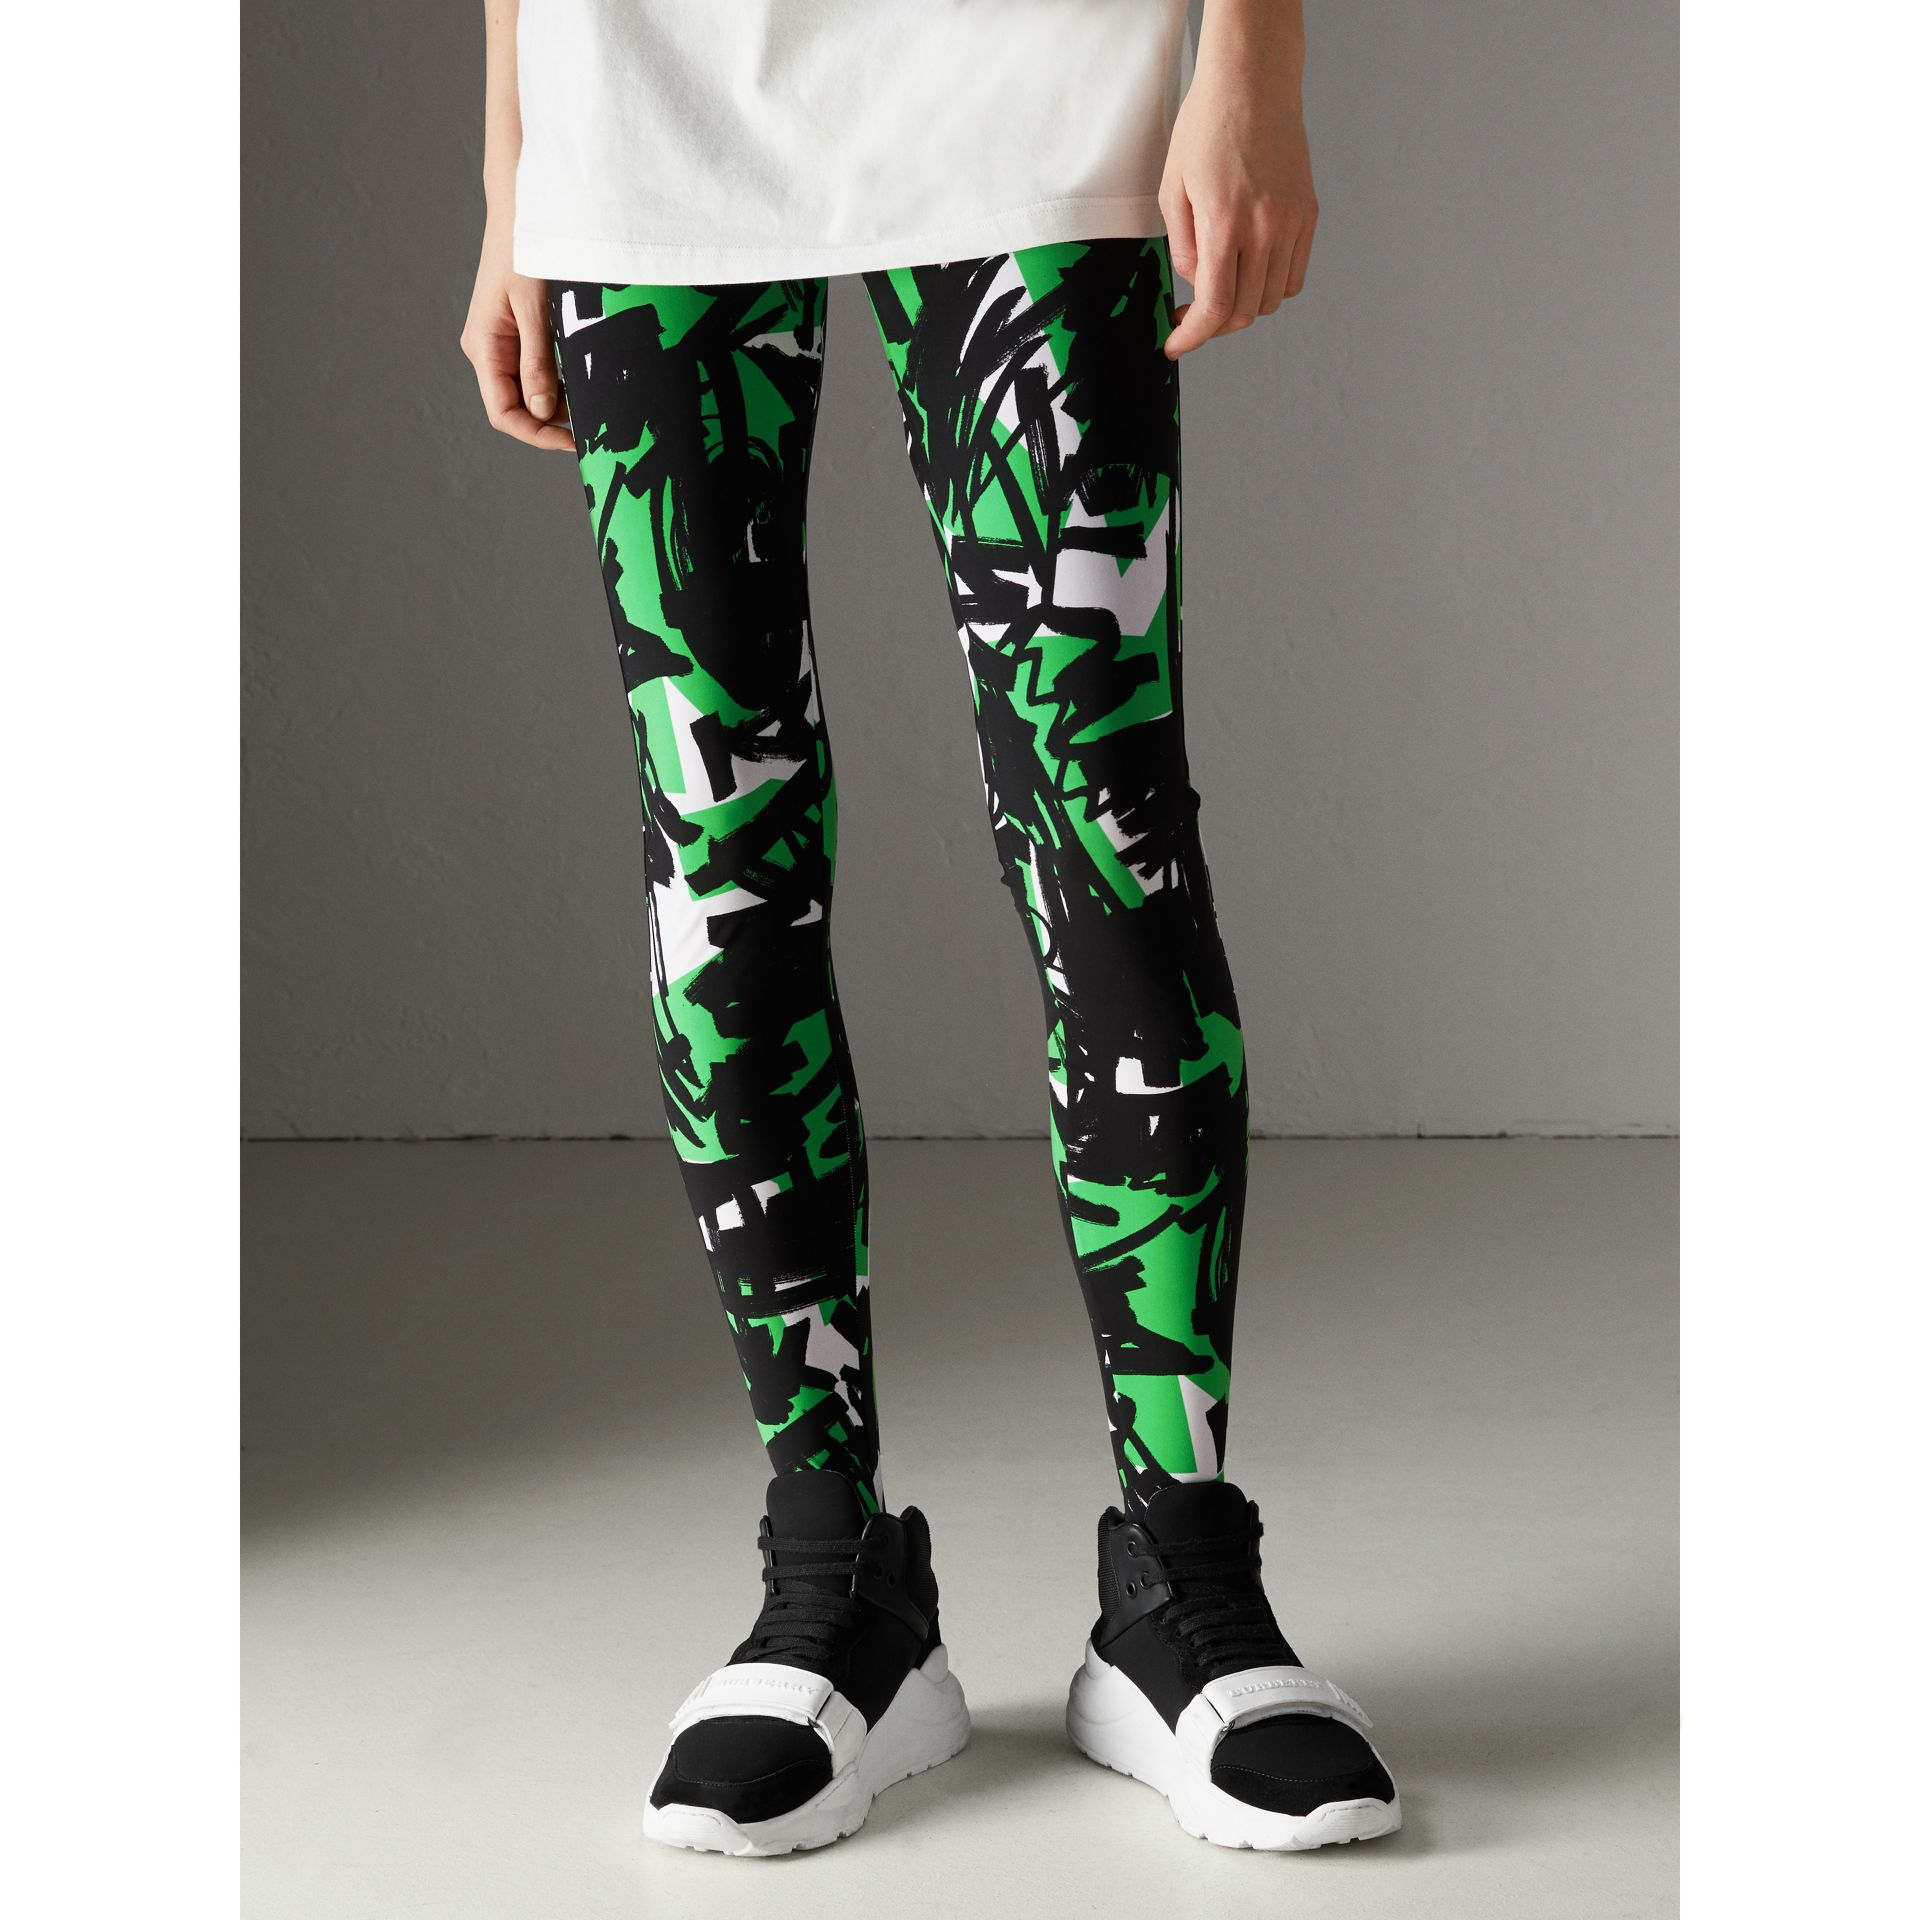 Graffiti Print Leggings in Neon Green - Women | Burberry United Kingdom - gallery image 4